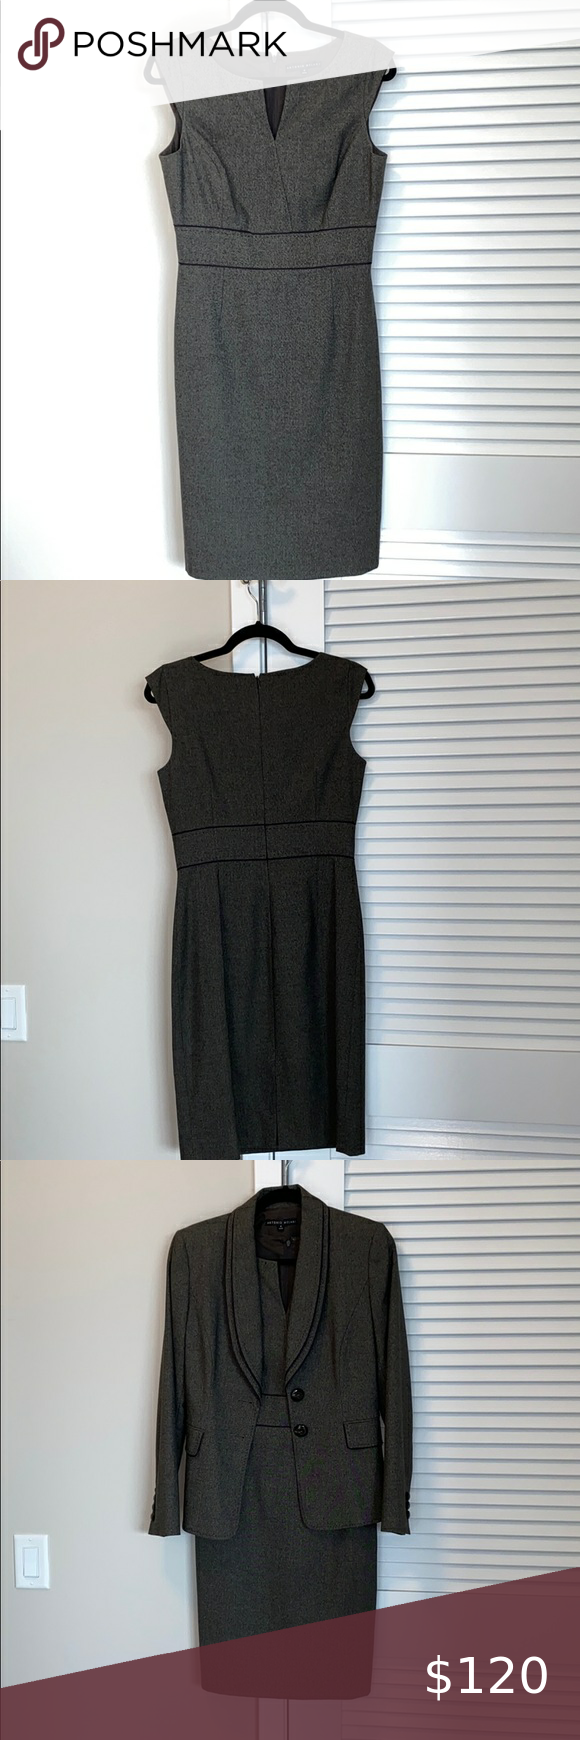 Antonio Melani matching dress and blazer Like new, worn once for a job interview...